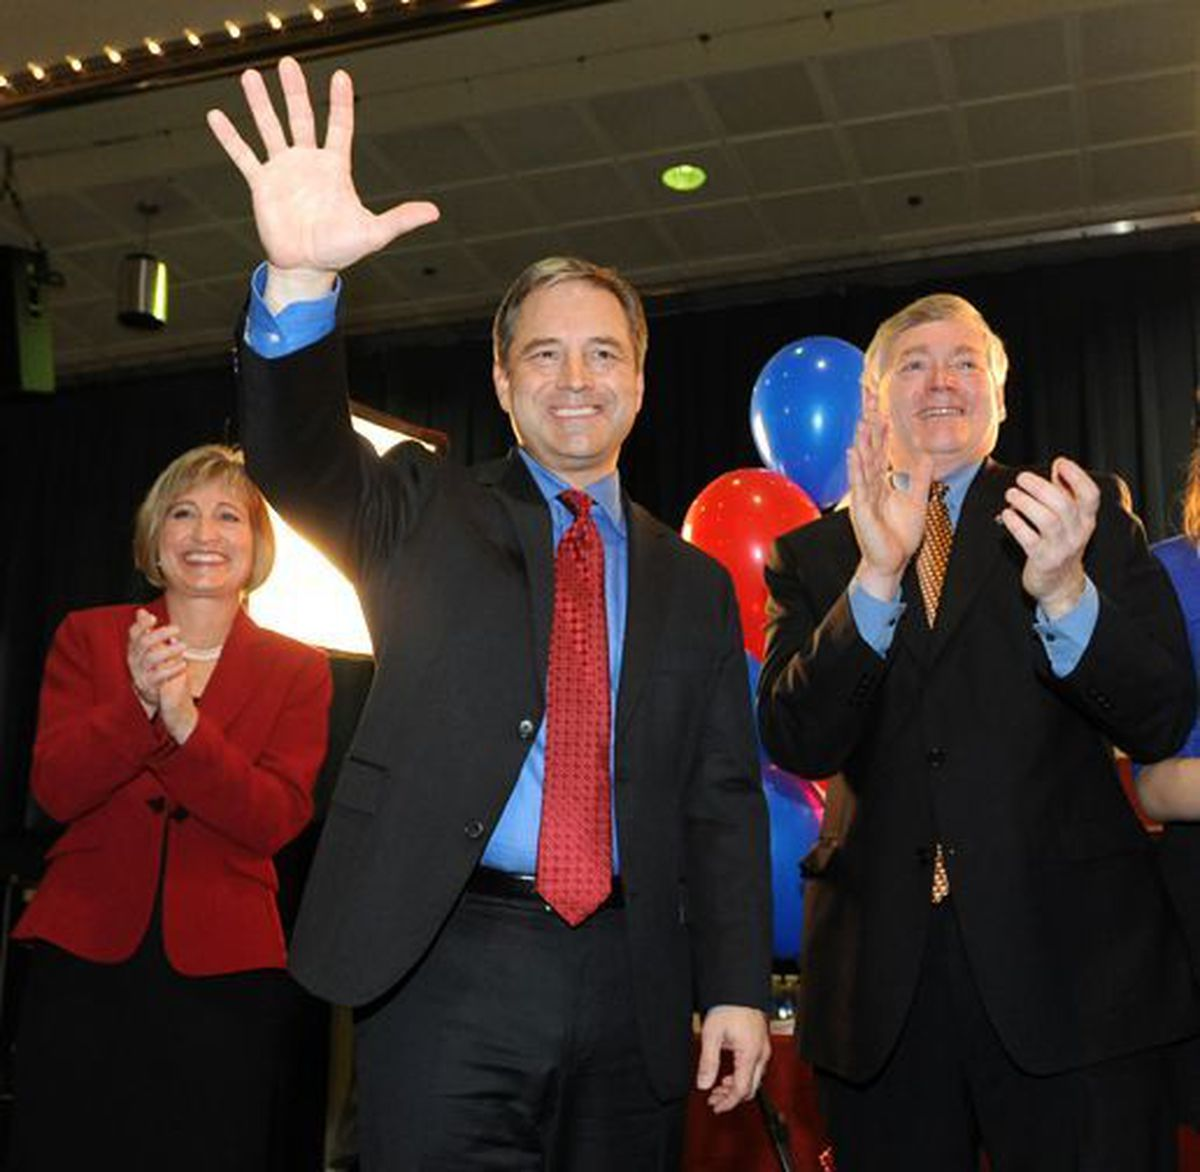 Gov. Sean Parnell thanks supporters flanked by his wife Sandy, left, and his running mate Mead Treadwell at election central Tuesday evening November 2, 2010 at the Egan Center downtown.